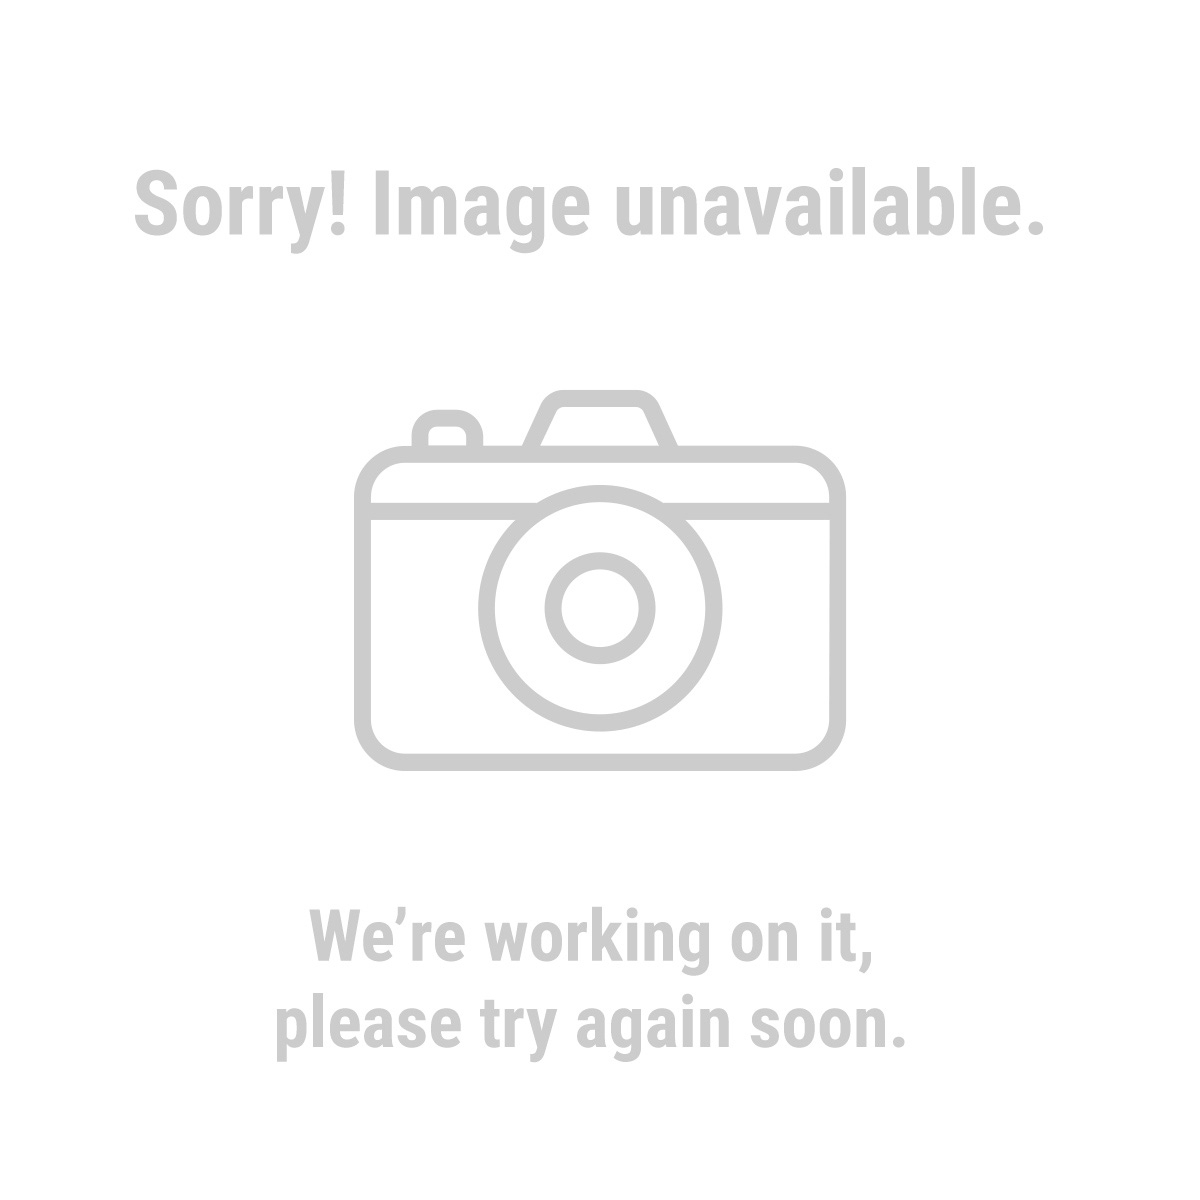 IRON ARMOR® 60778 Truck Bed Coating - 1 Gallon